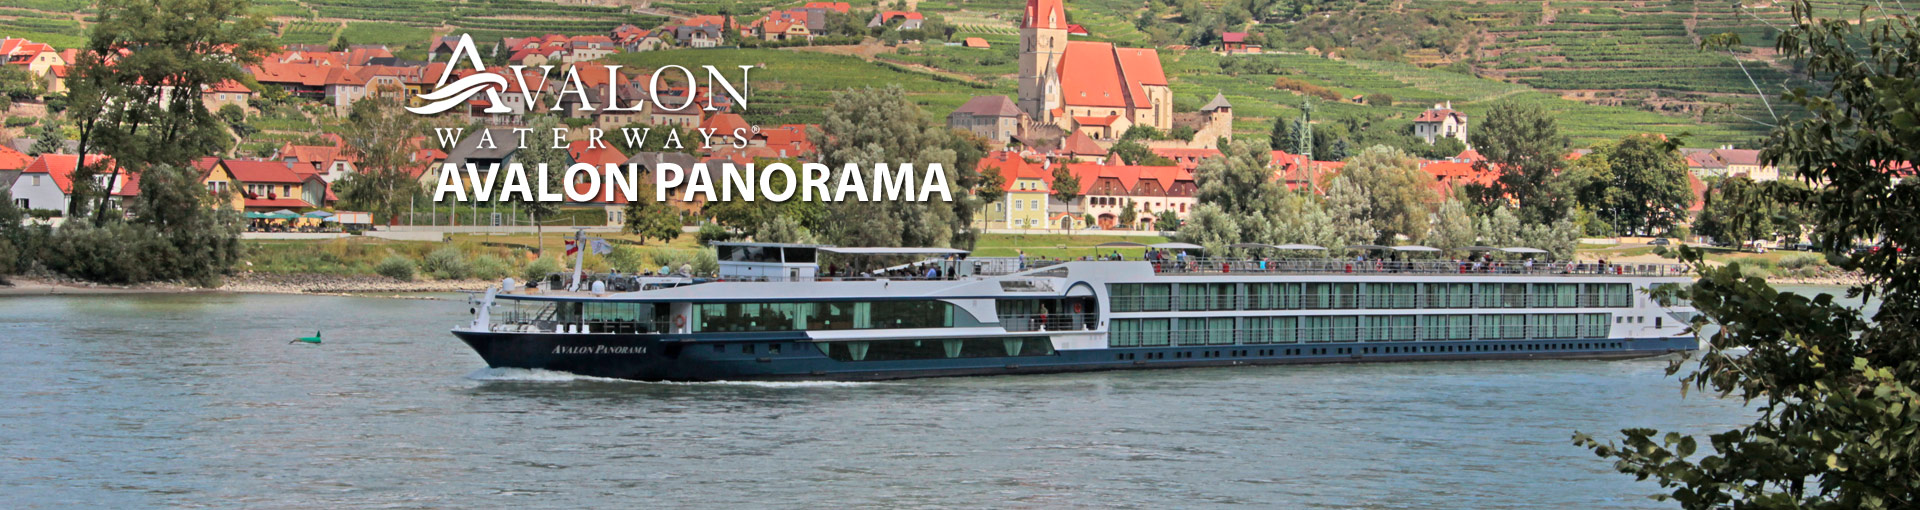 Avalon Waterways Panorama river cruise ship